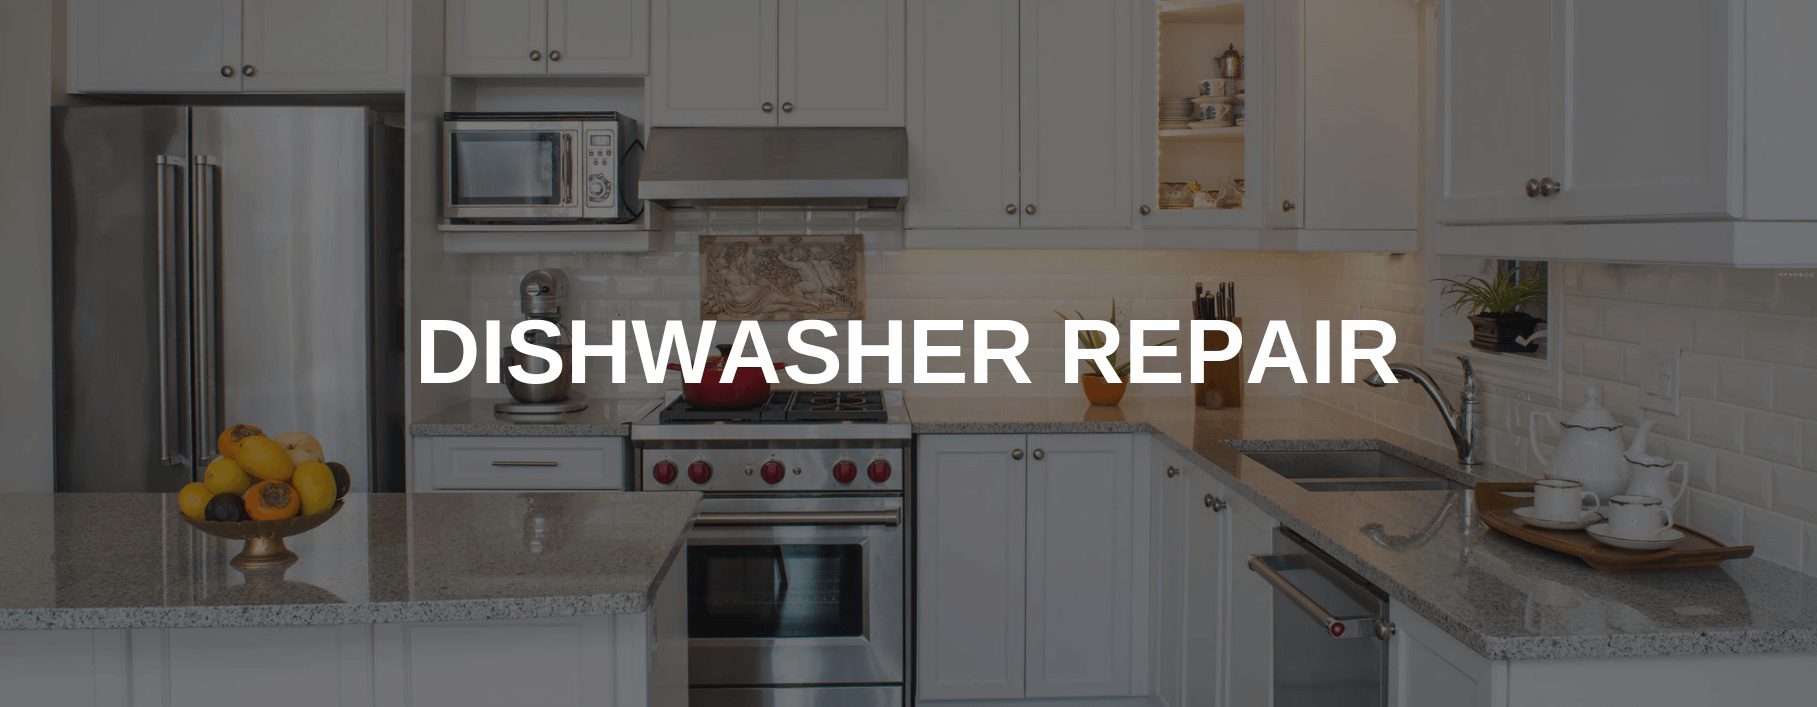 dishwasher repair virginia beach